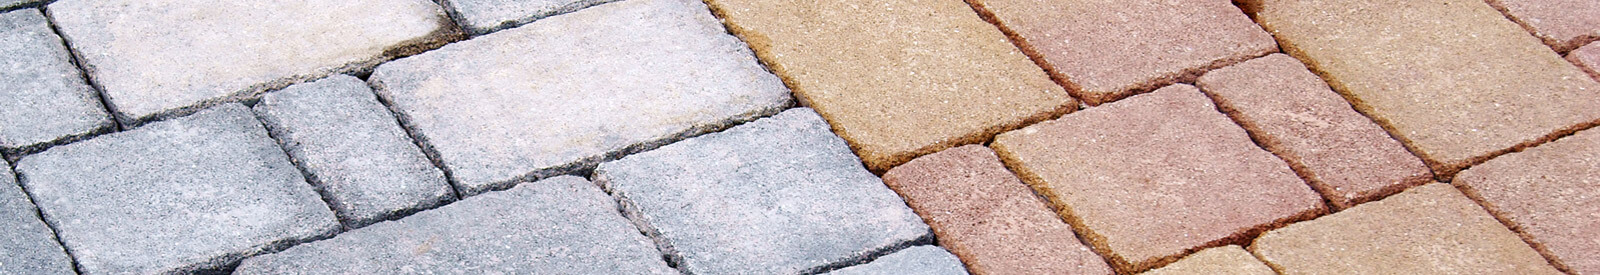 Preston Based All Seasons Paving provide paving services in Preston UK